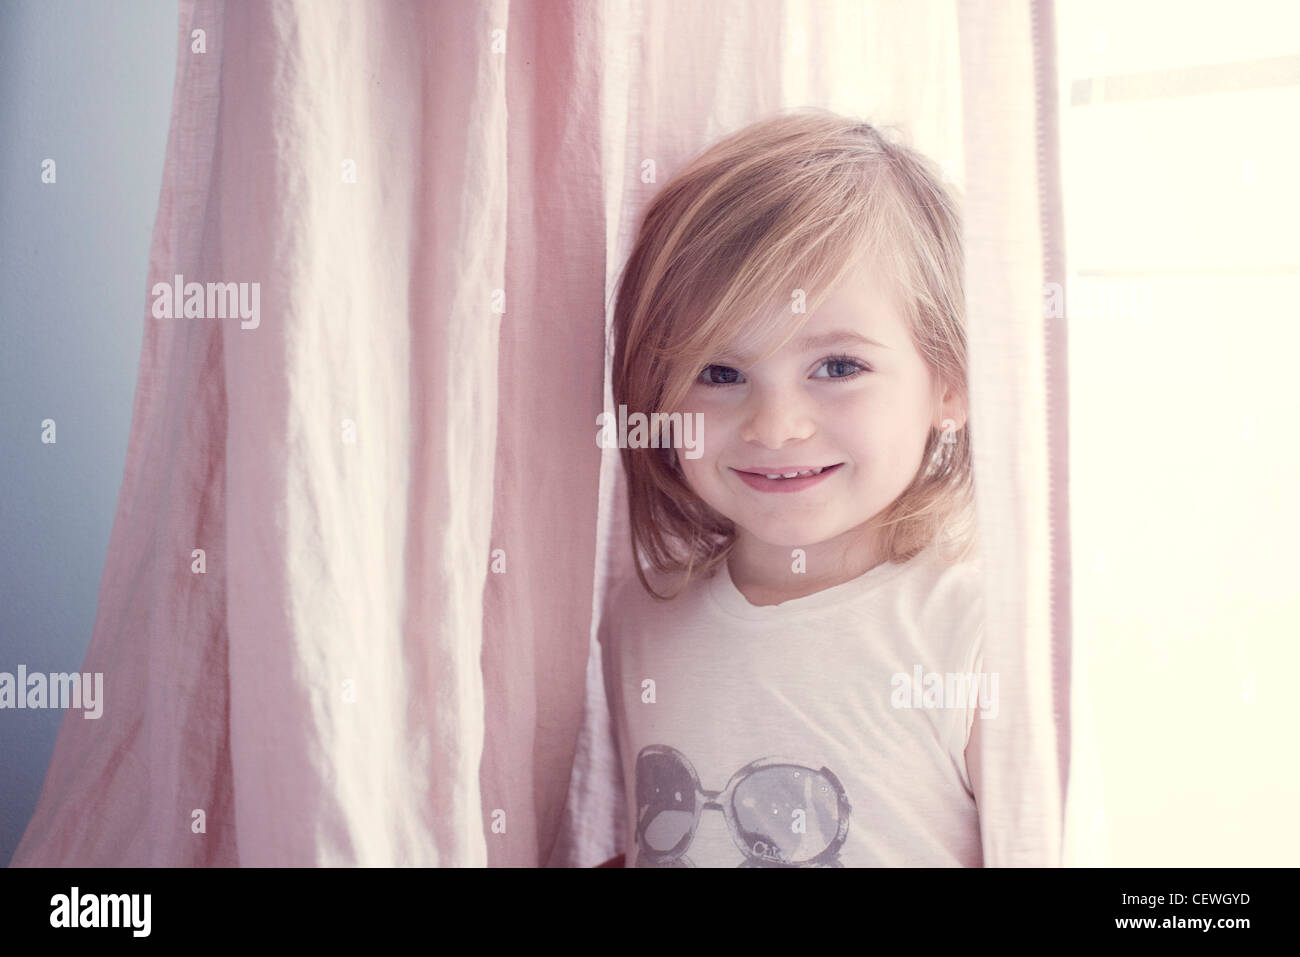 Little girl in front of window, smiling, portrait - Stock Image